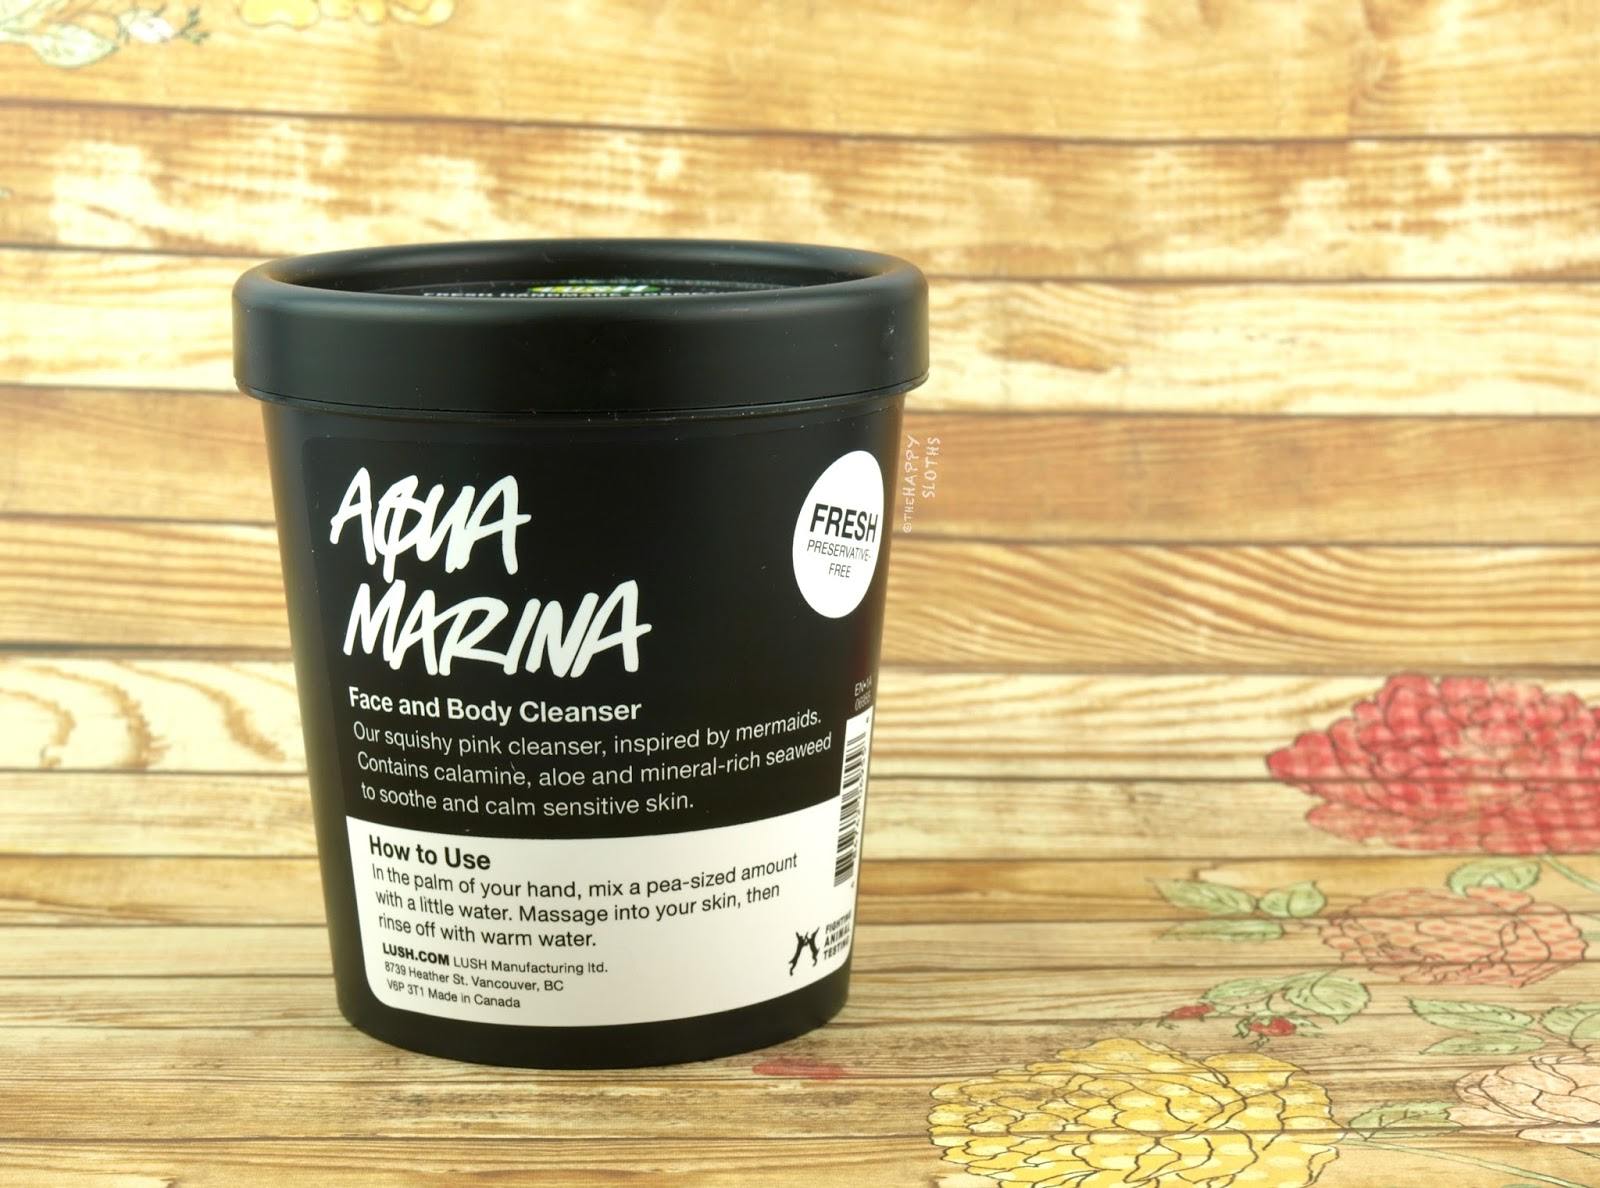 Lush Aqua Marina Face and Body Cleanser: Review